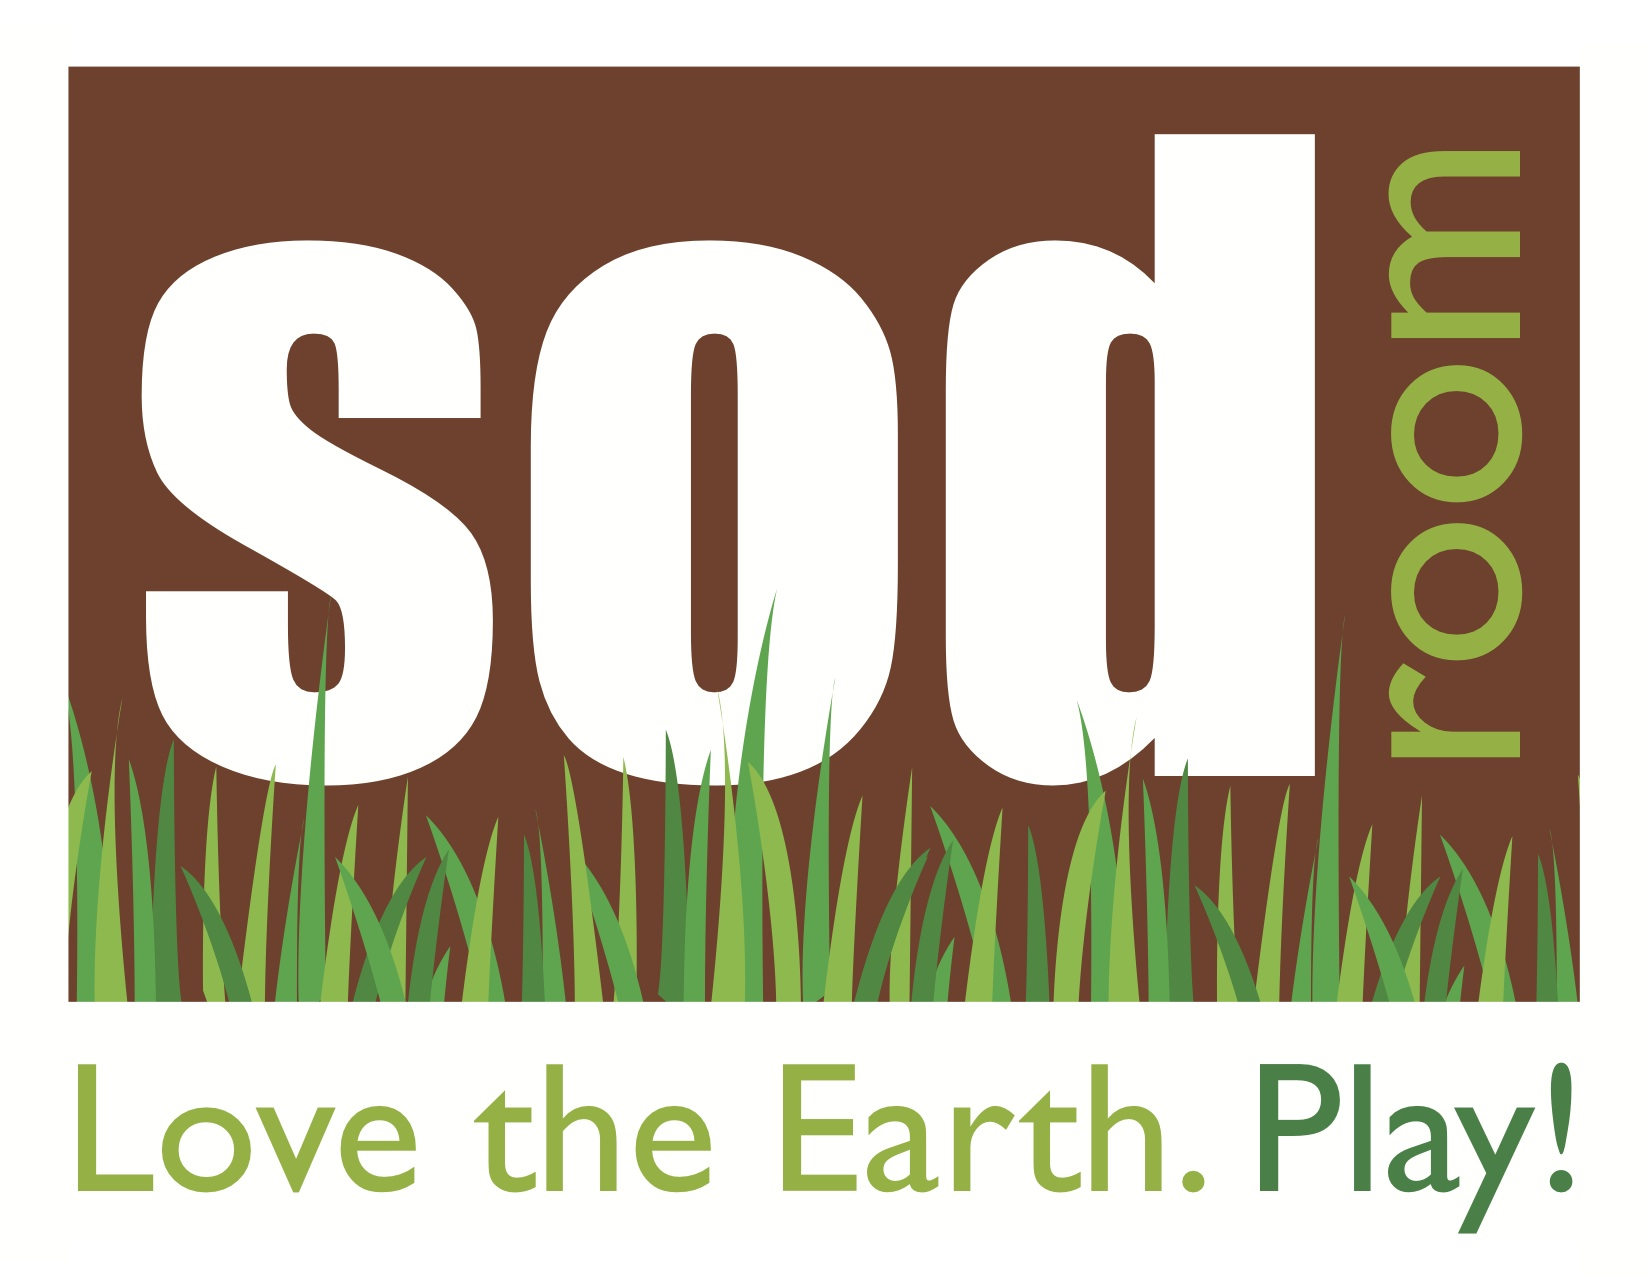 Sod Room - Popup playspace experience for children with music, crafts and developmental activities.Thursday, June 6th - Thursday, July 11thThursday, August 1st & Thursday, Sept 5th